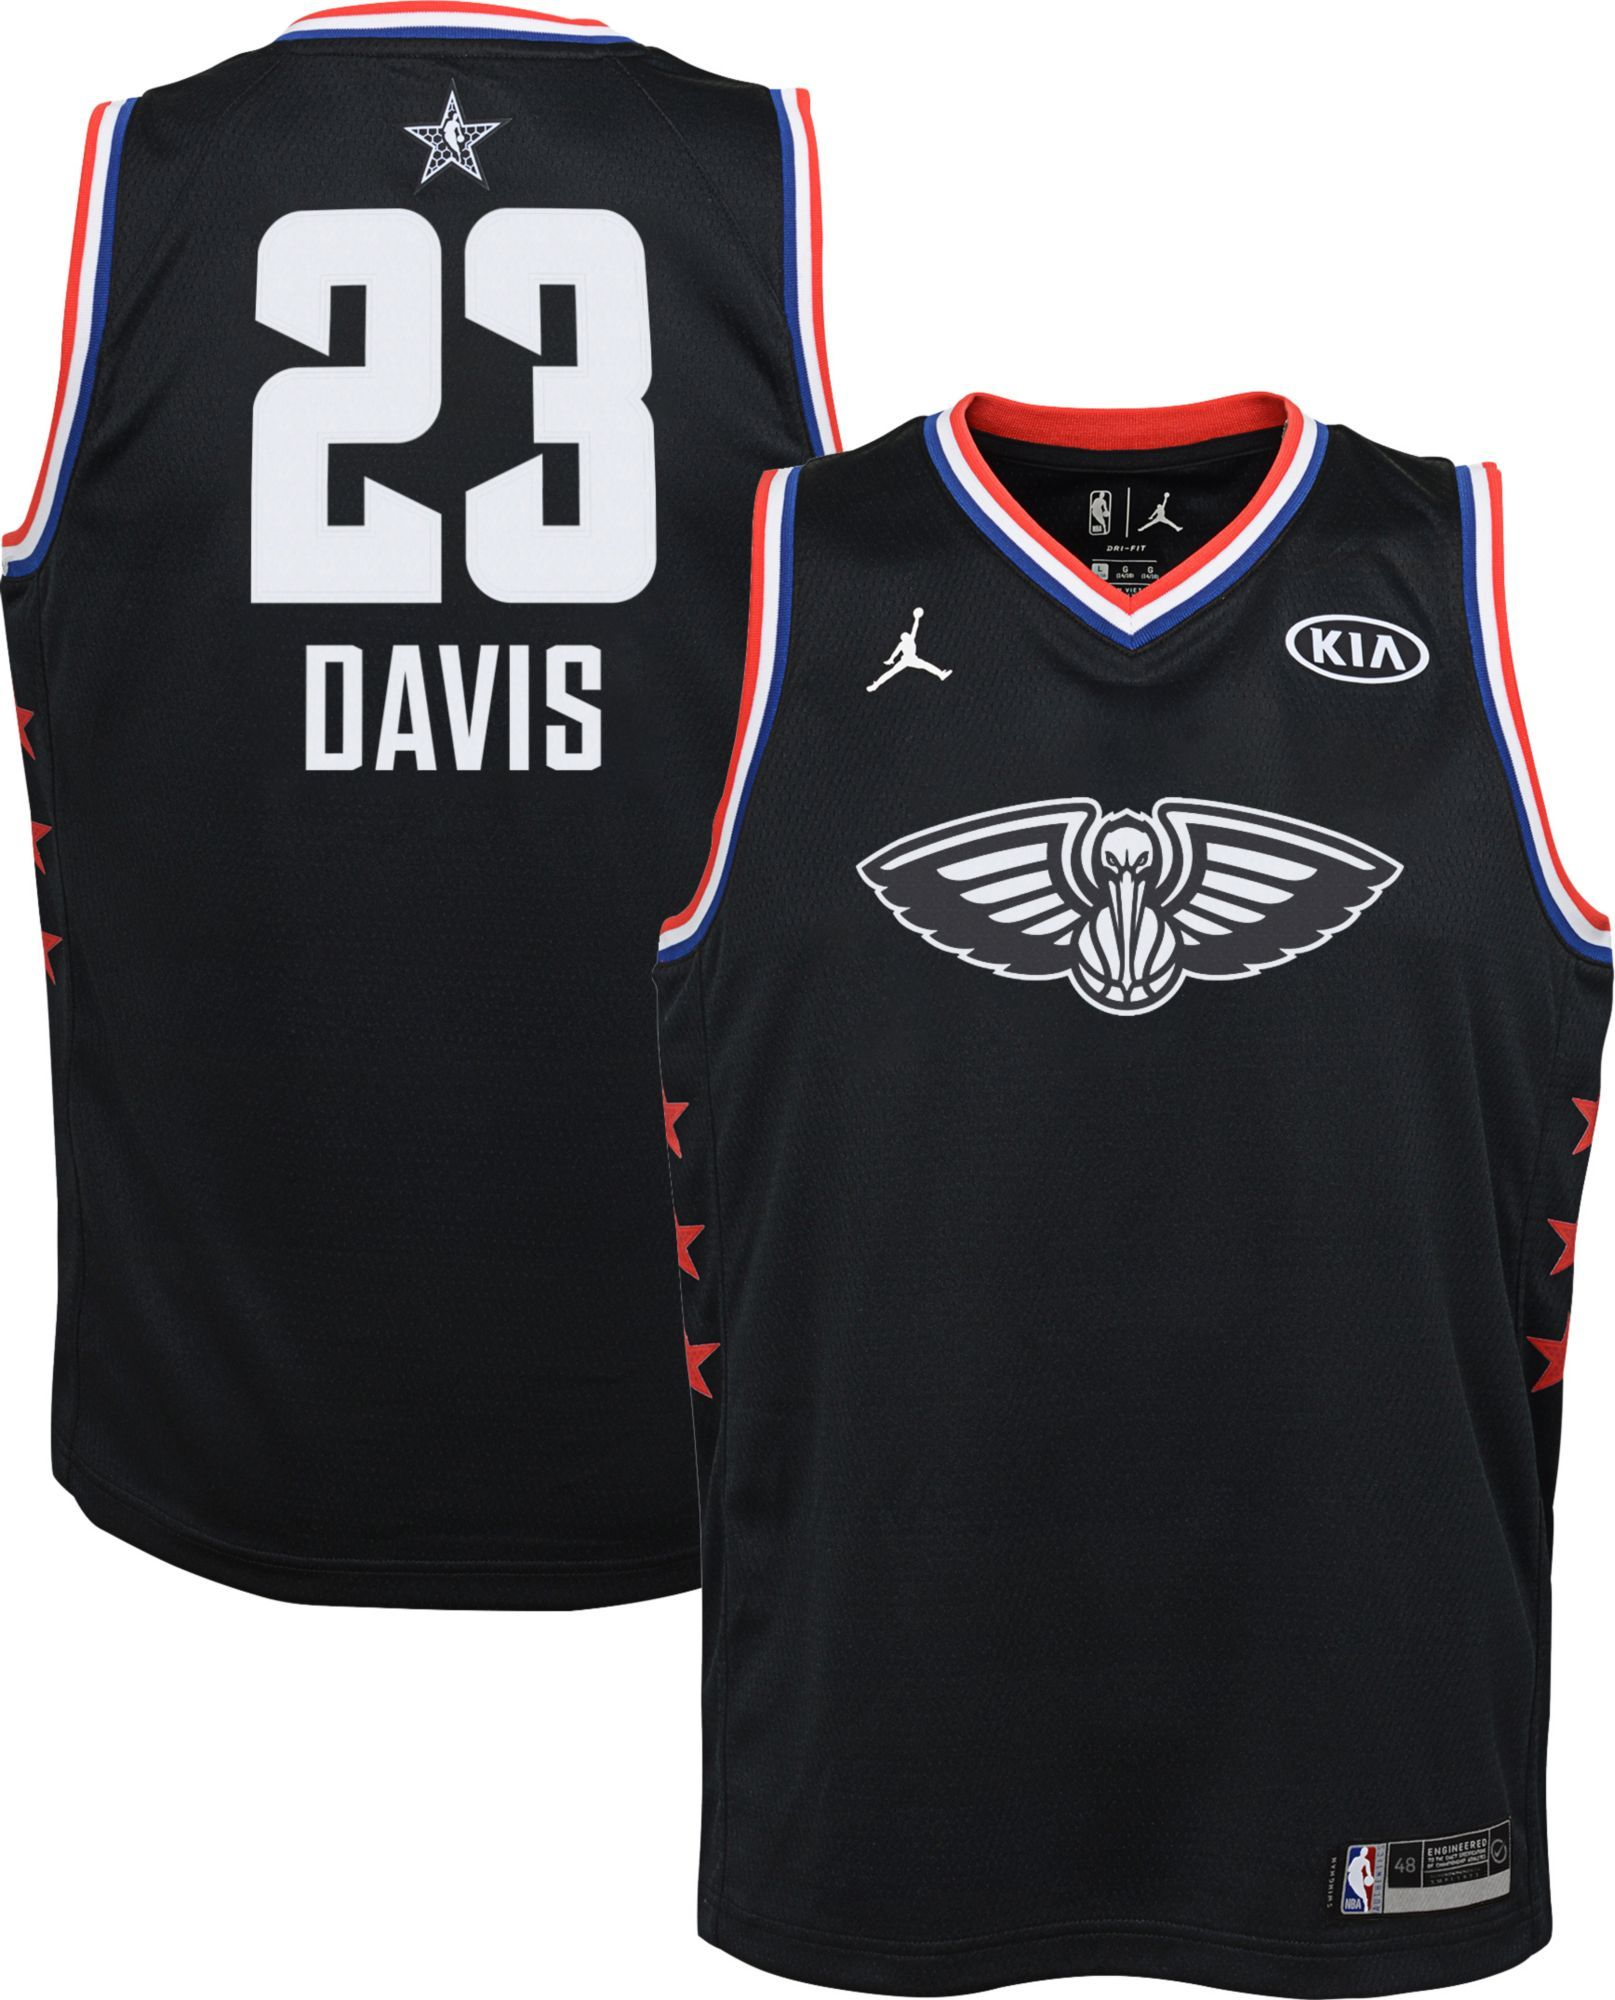 be41019ff6e Jordan Youth 2019 NBA All-Star Game Anthony Davis Black Dri-FIT Swingman  Jersey